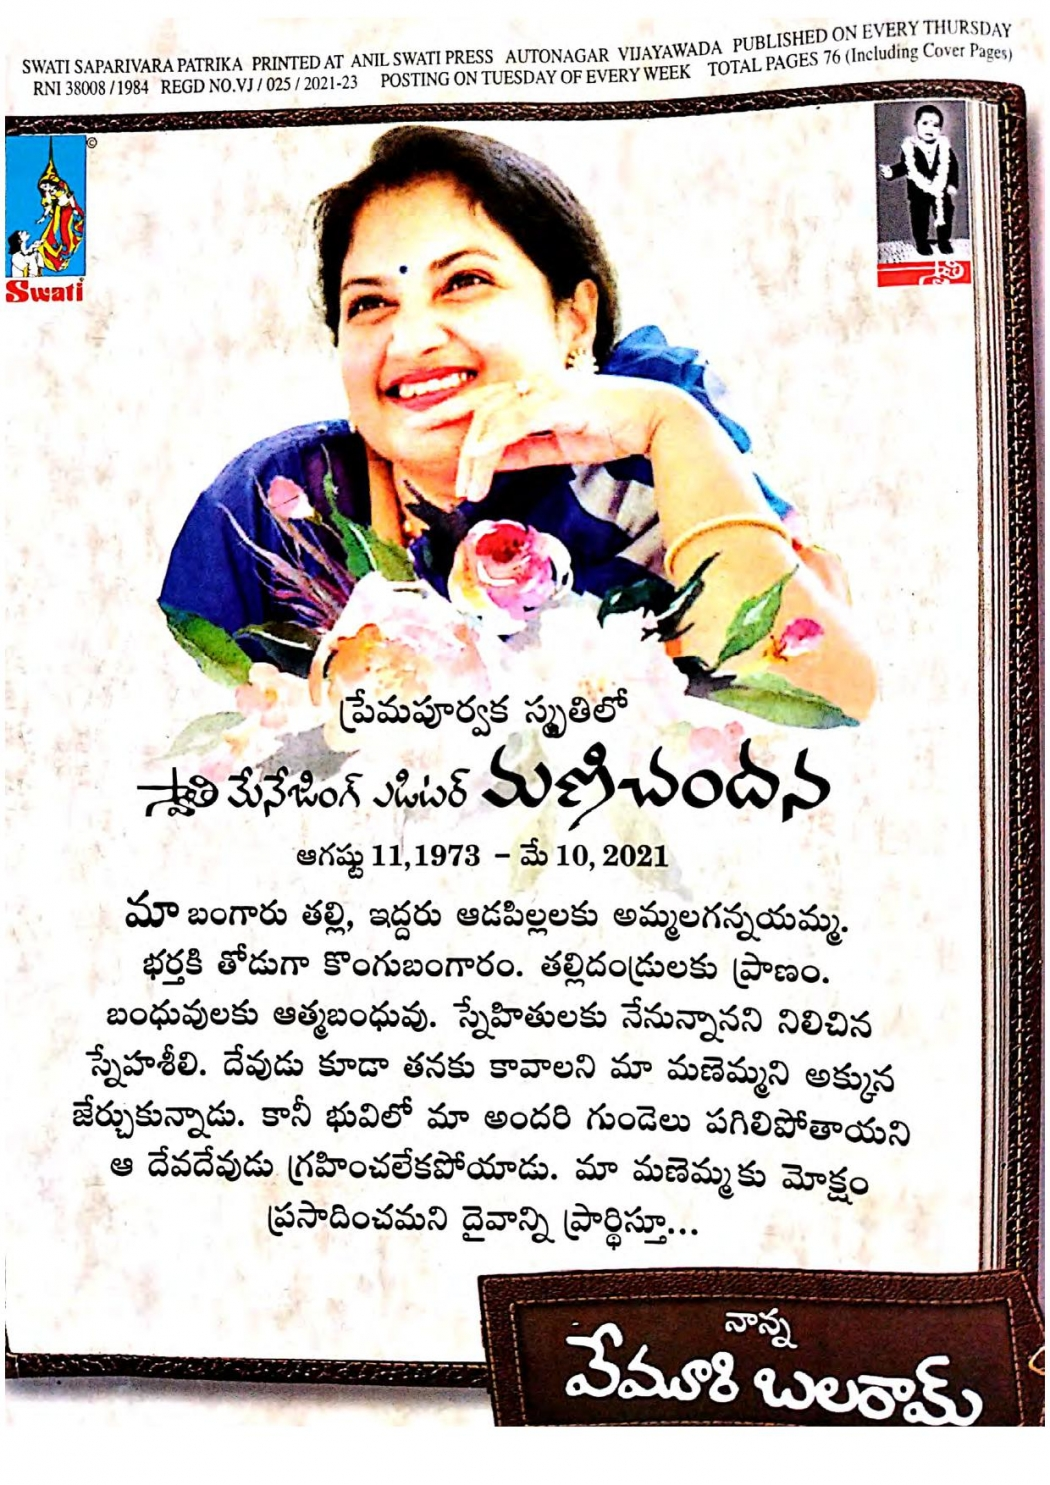 Swathi-Weekly-9th-July-2021-page-076